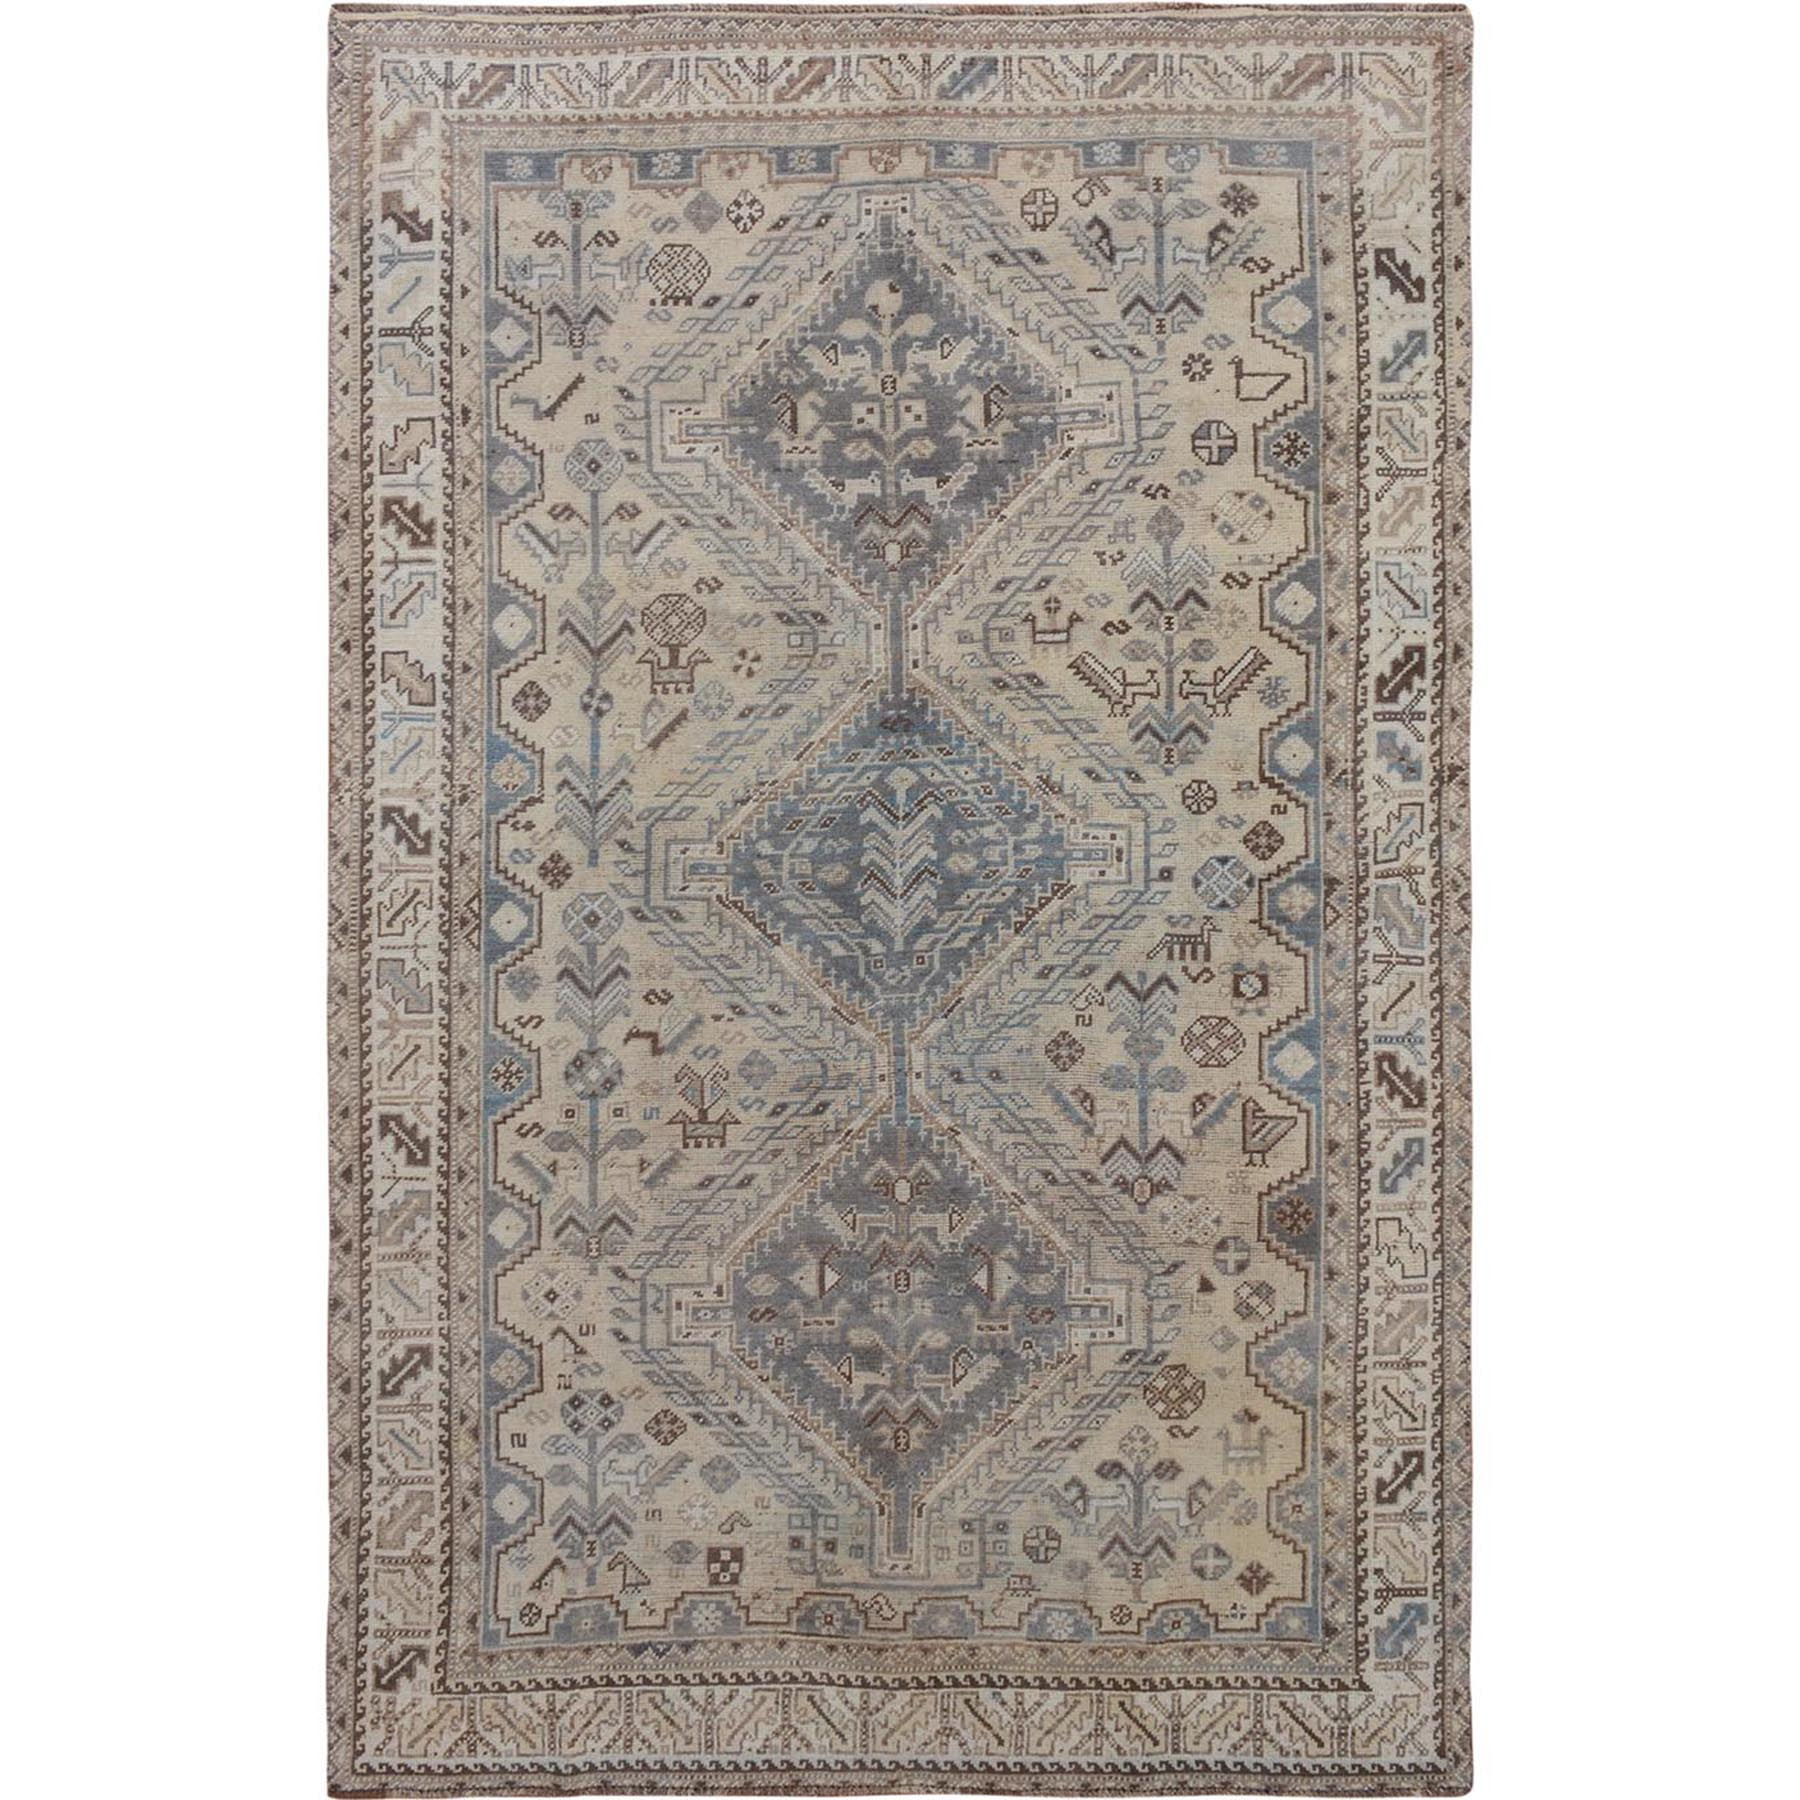 "5'5""X8'9"" Natural Colors Vintage And Worn Down Persian Shiraz Clean Hand Knotted Pure Wool Oriental Rug moae76eb"